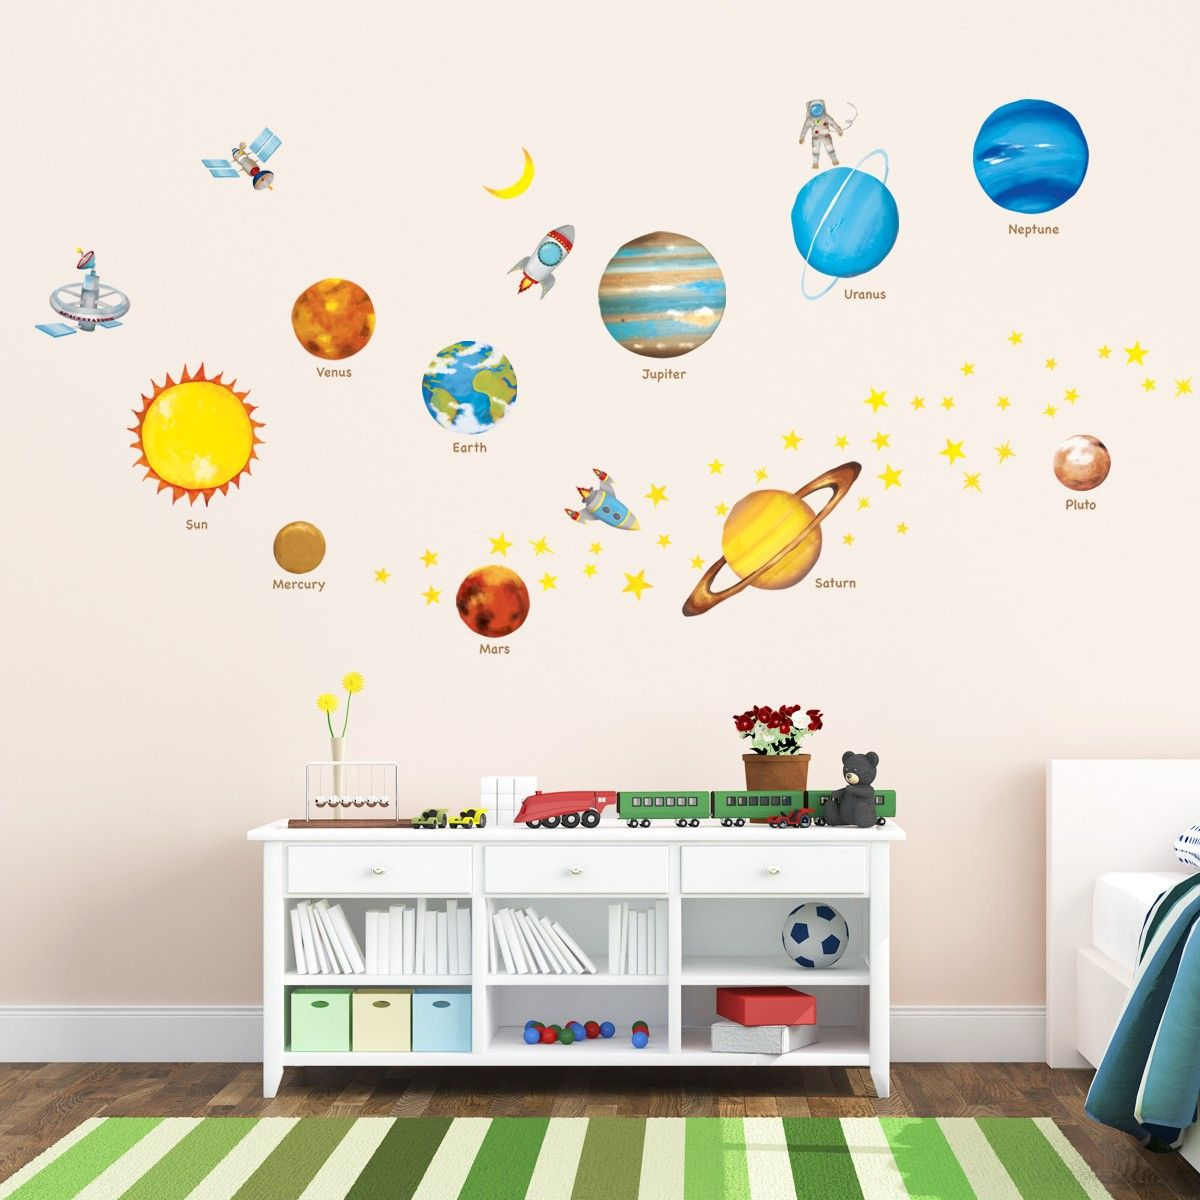 Planets In The Space Wall Stickers The Planets In The Space Wall